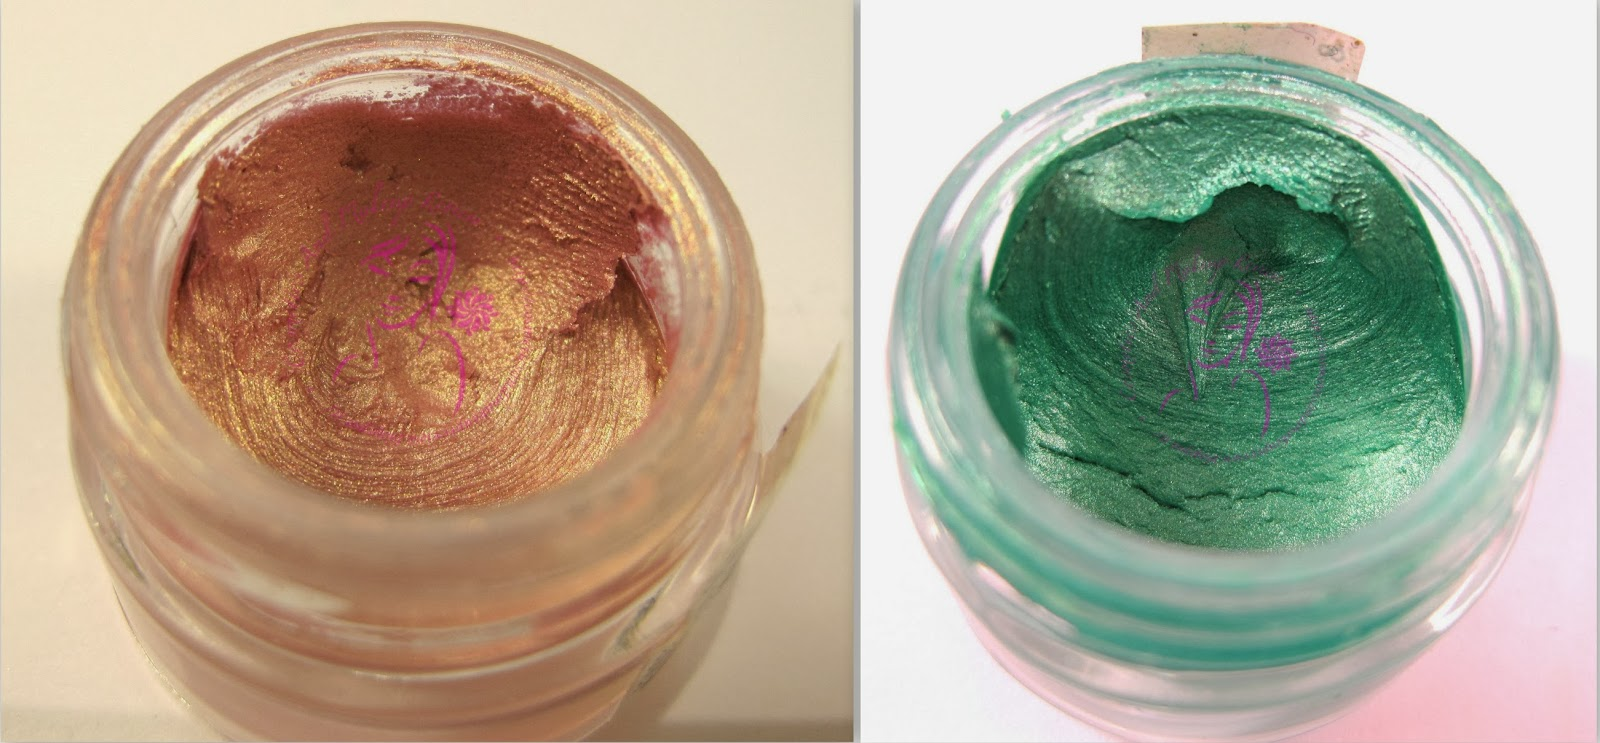 Astra Soul Color Waterproof Eyeshadow n° 02 e 04